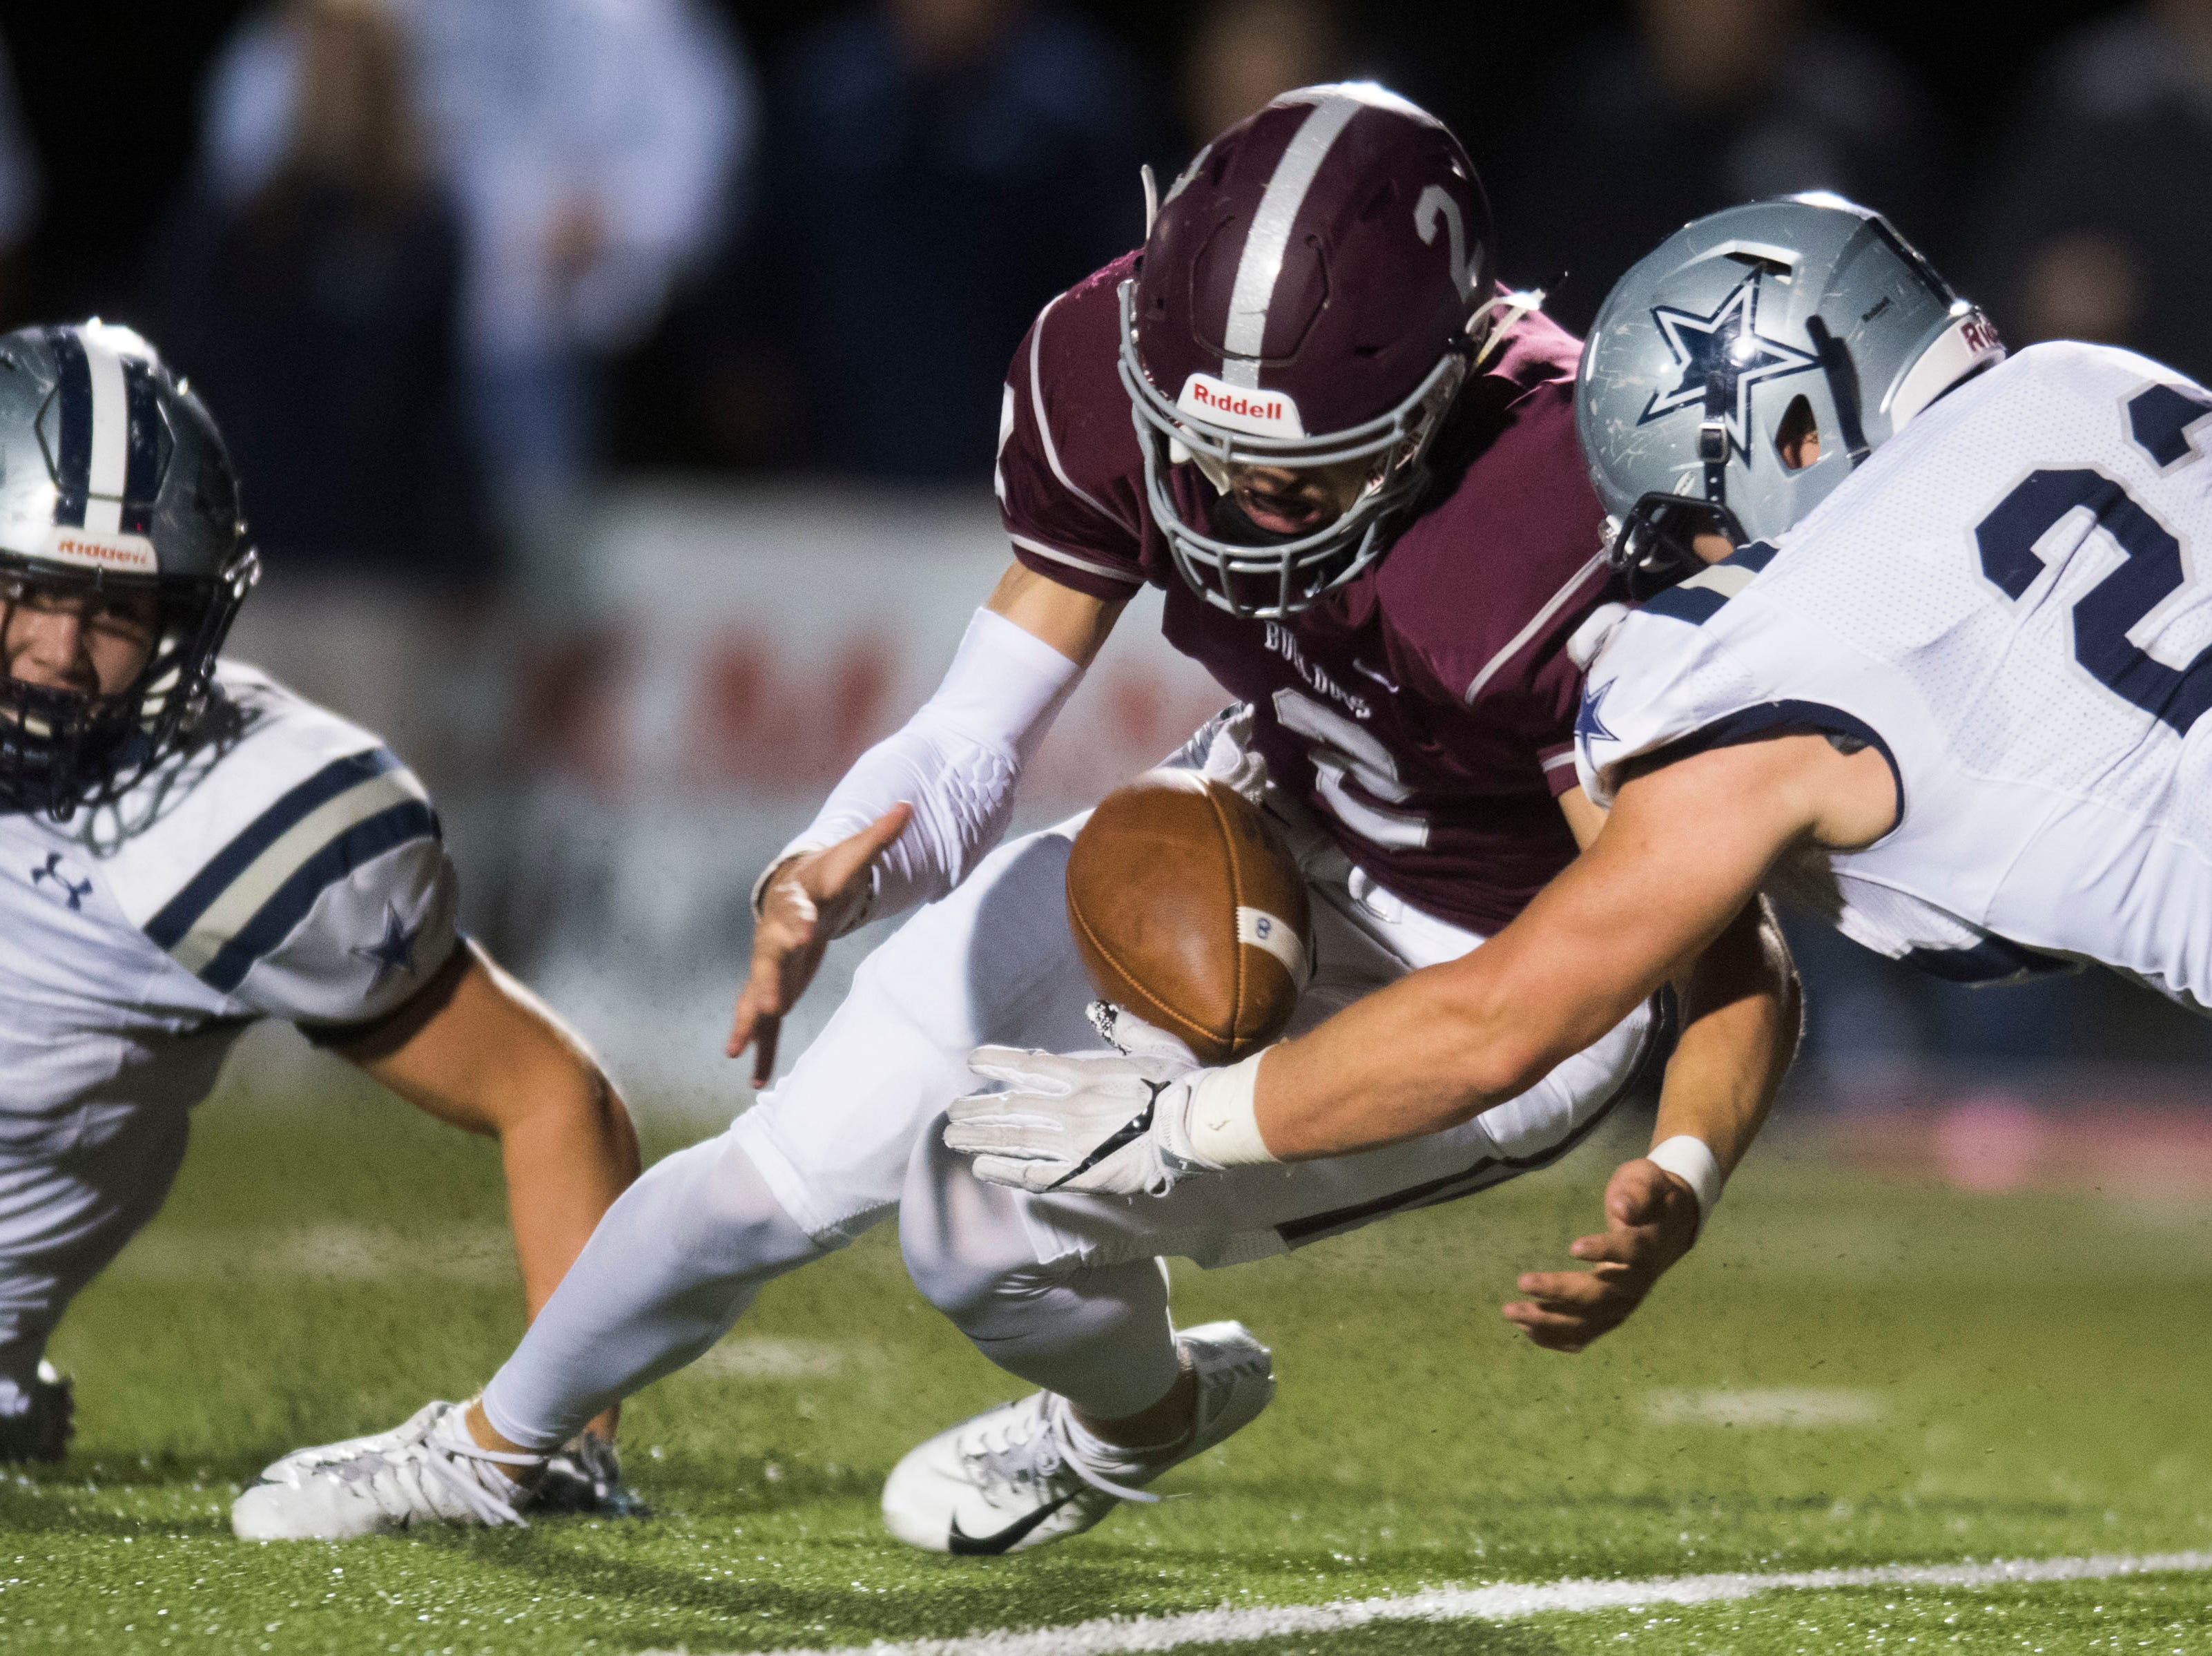 Players dive for a fumbled ball during a game between Bearden and Farragut at Bearden Thursday, Oct. 11, 2018. Bearden took down Farragut 17-13.